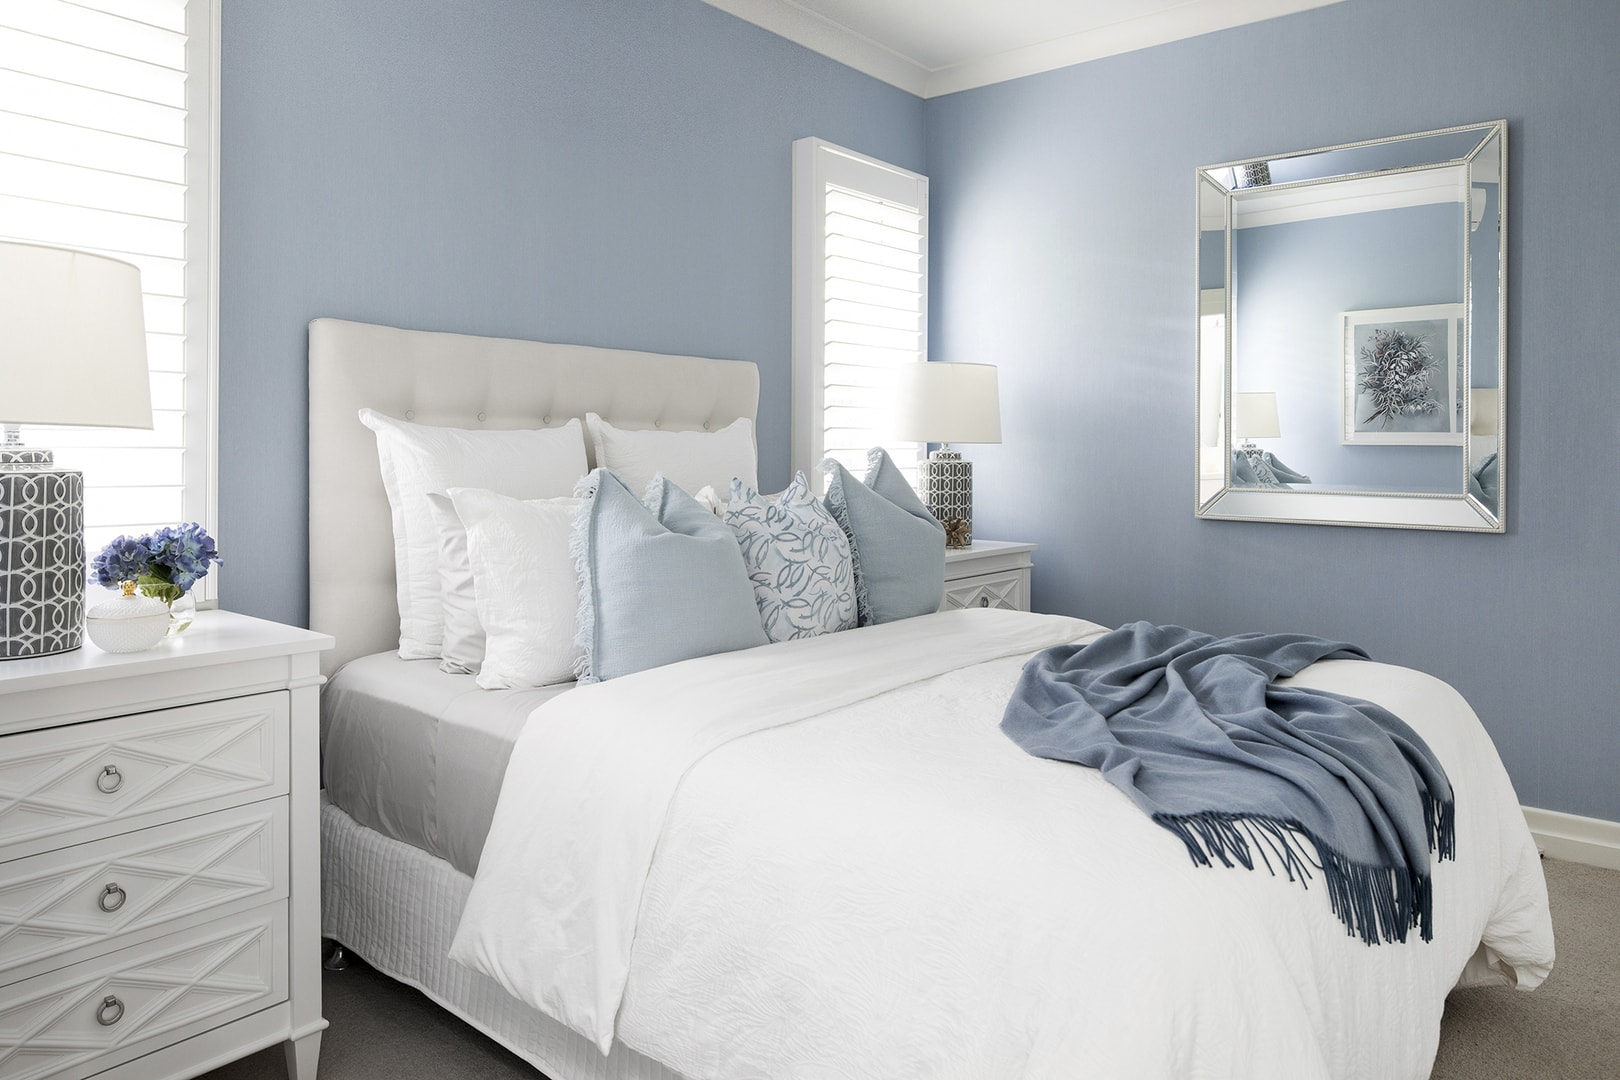 hamptons bedroom with light blue walls cream upholstered headboard and white hamptons bedside tables